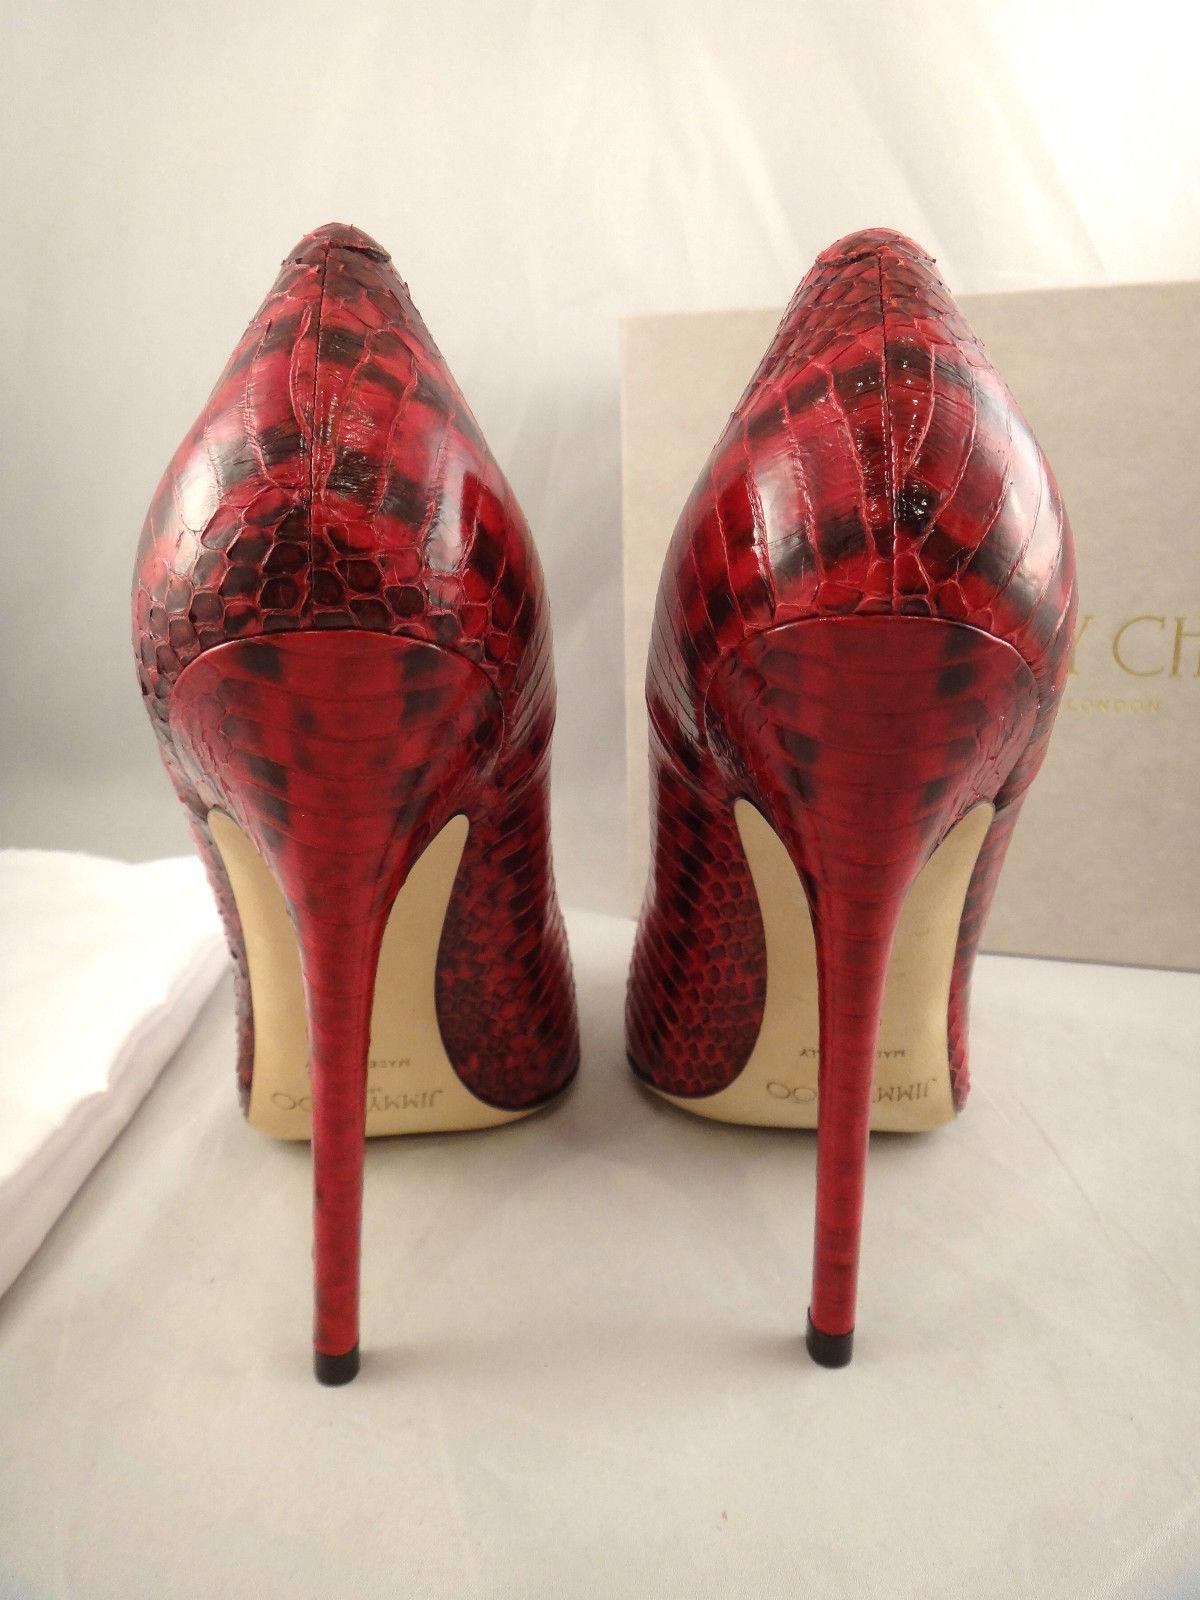 ebb7f553d4 ... Gentlemen/Ladies < Jimmy Choo Red Anouk Snakeskin Glossy Leather  Pointed Pointed Pointed Heel 37 ...